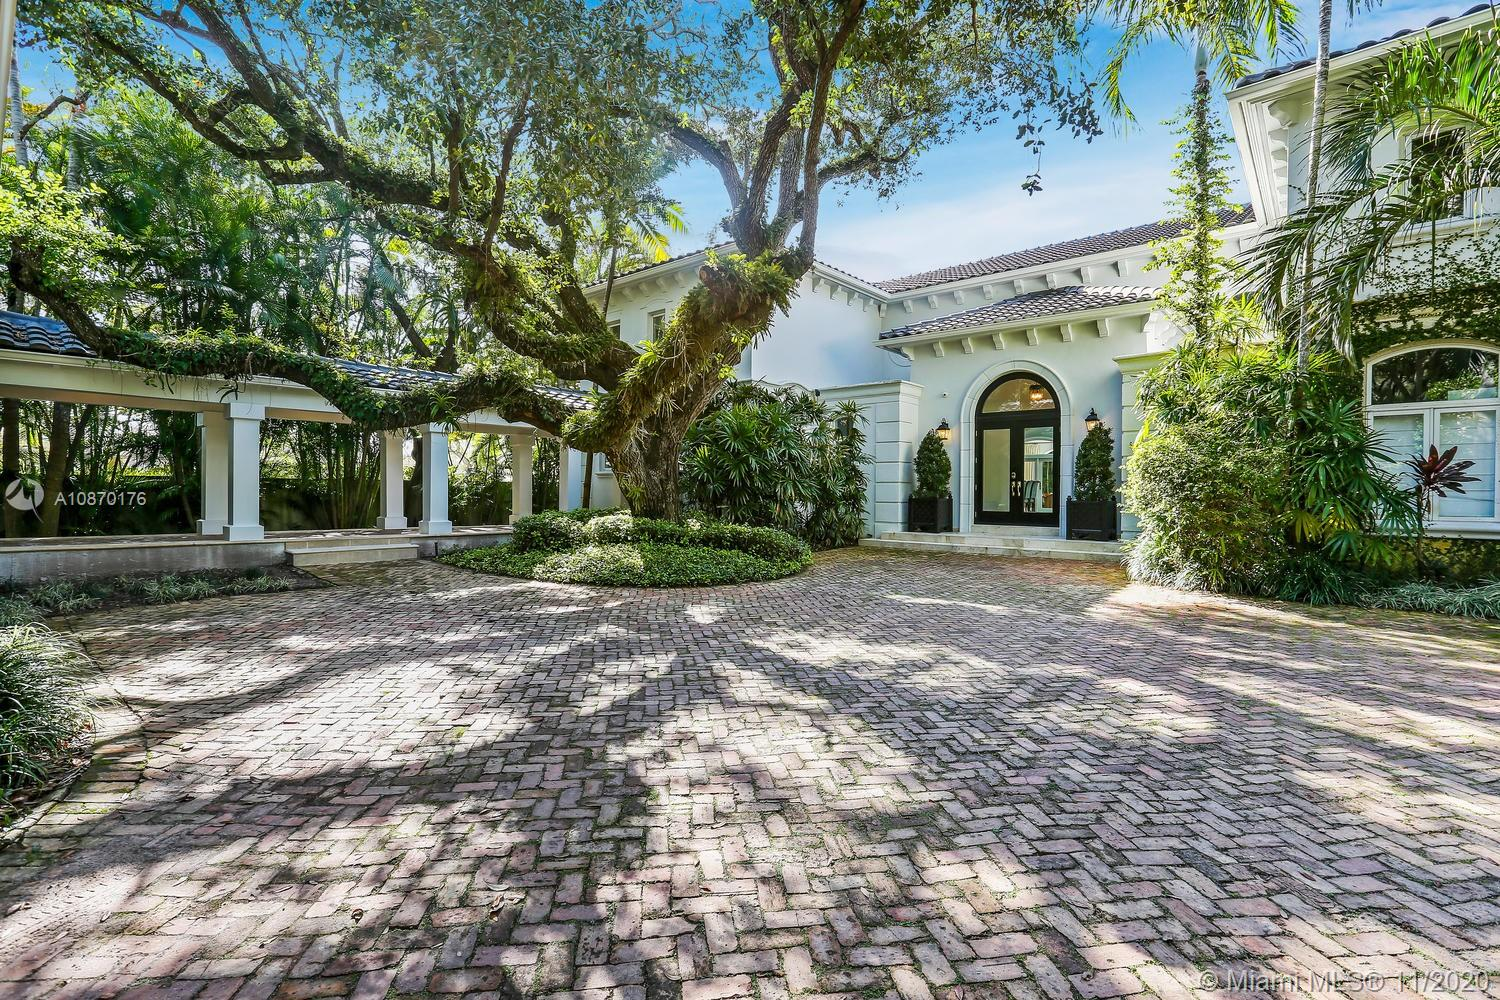 French contemporary, 100% redone, builder acre hidden in Gated Palms Estate on Cul-de-sac. Uniquely convenient & private. MOVE IN READY! NO HIDDEN COSTS. Generator pwr.6,800 sqft, 24ft vaulted ceilings, 3 seating areas. 5 bed/5.5 ensuite baths. Scavolini gourmet kitchen, herringbone floors, Subzero fridge/freezers, Gagganeau wine fridge & Wolf gas stove. Grandmaster with private lounge/HOME OFFICE,3 large walk-in closets & private exit to pool & garden. Great room, formal dining & living, family room. Entertainer's dream, impact glass, large outdoor entertainment. 500ft covered terrace, lounge area & marble deck.Outdoor kitchen, vast garden lined with Palms.Perfect for exclusive events. French lamp lite tree-lined private manicured access. Top schools, restaurants & shops.